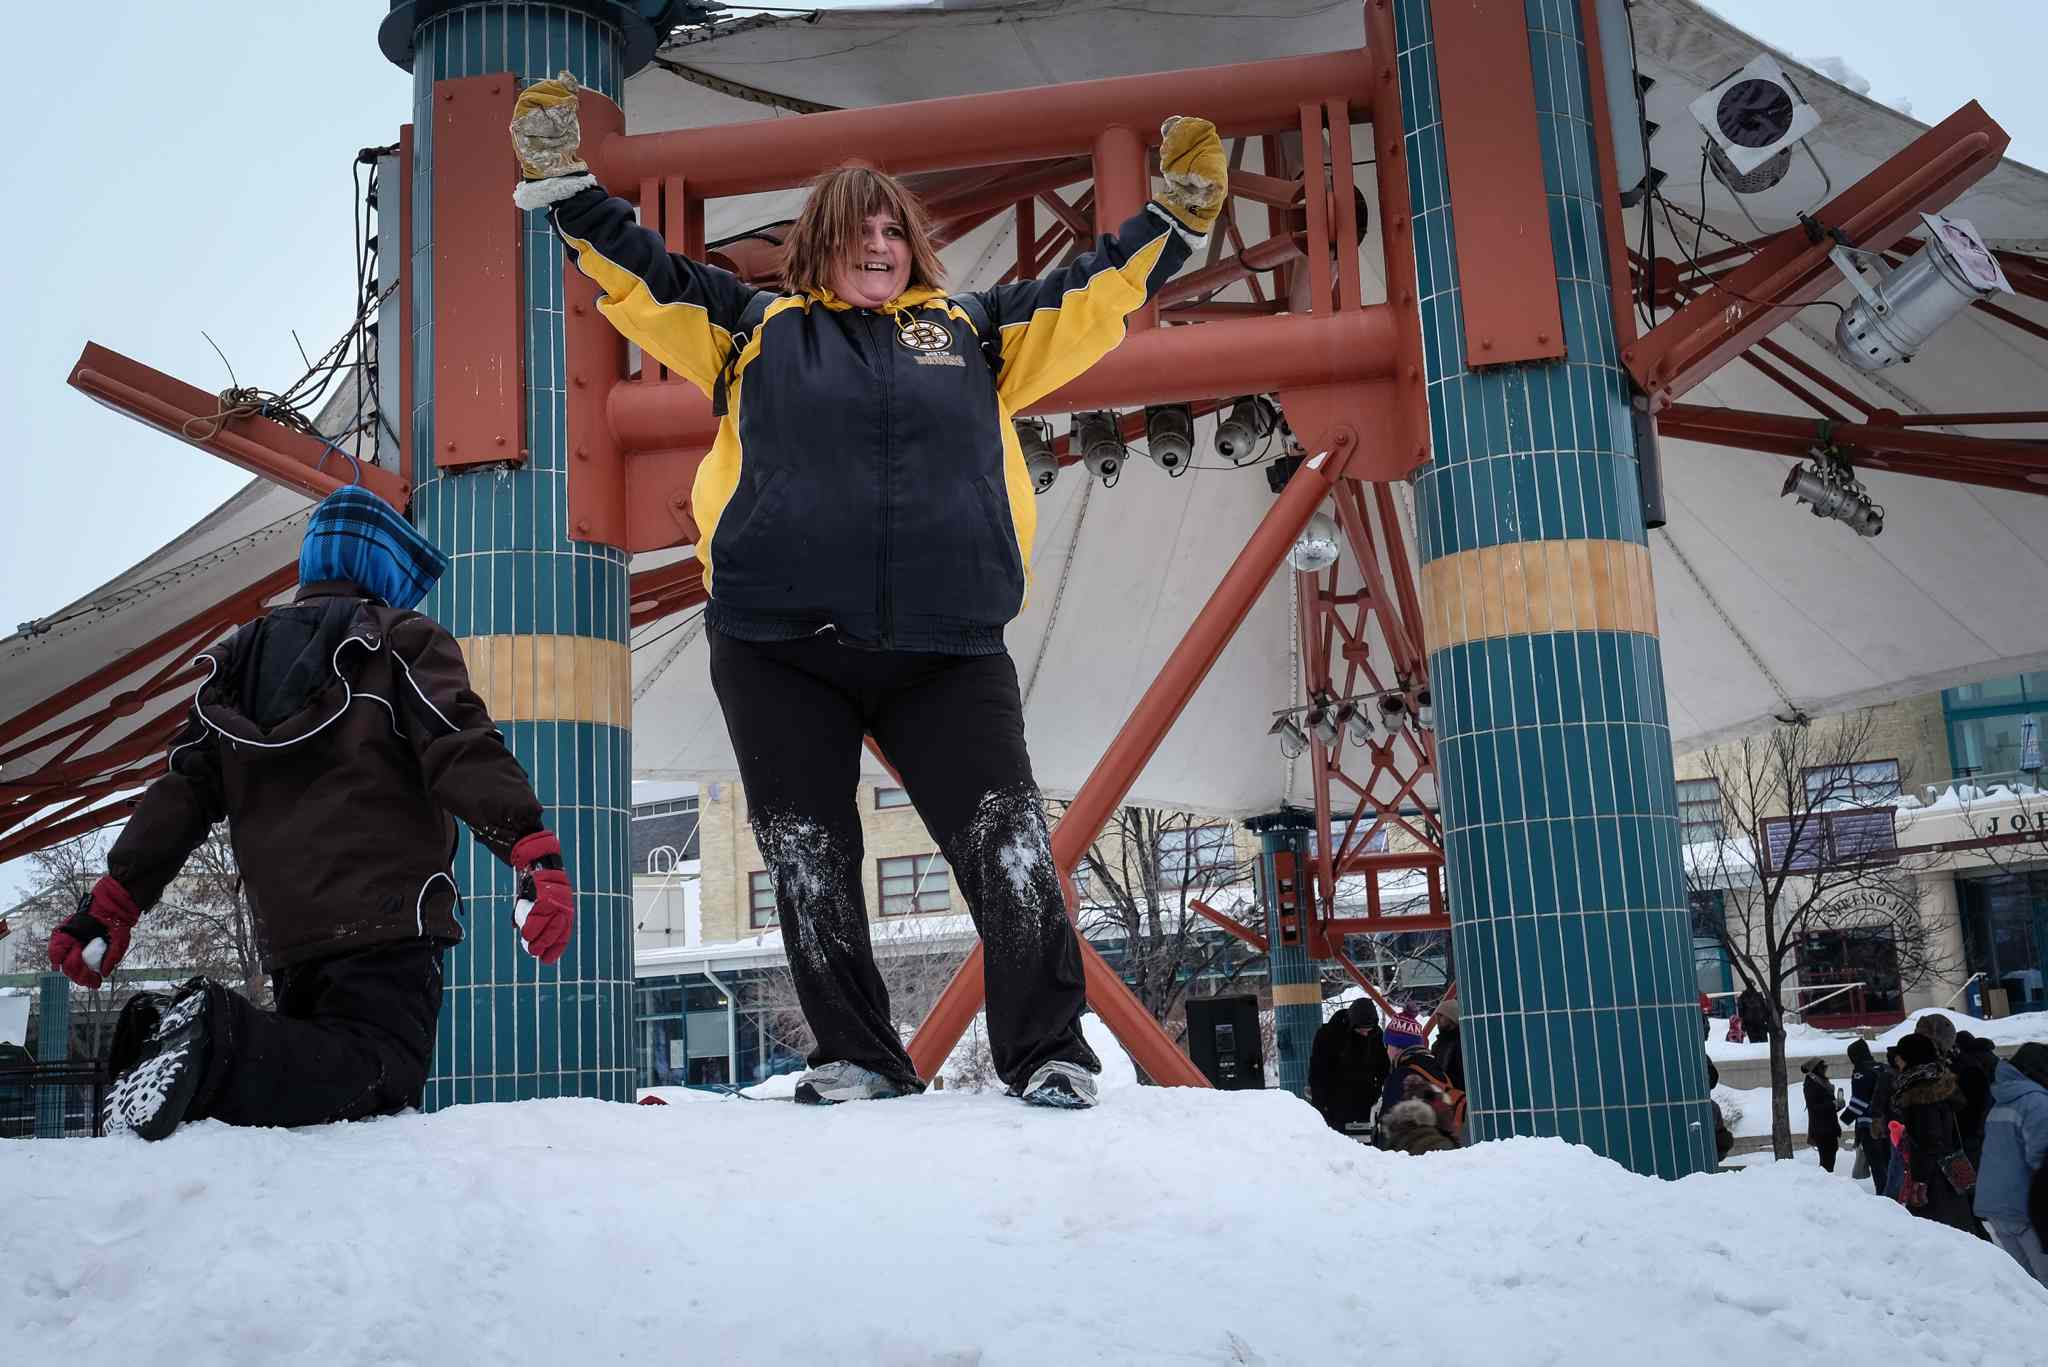 Tom jokingly bet Cathy she couldn't climb the large pile of snow by the skating rink at The Forks.